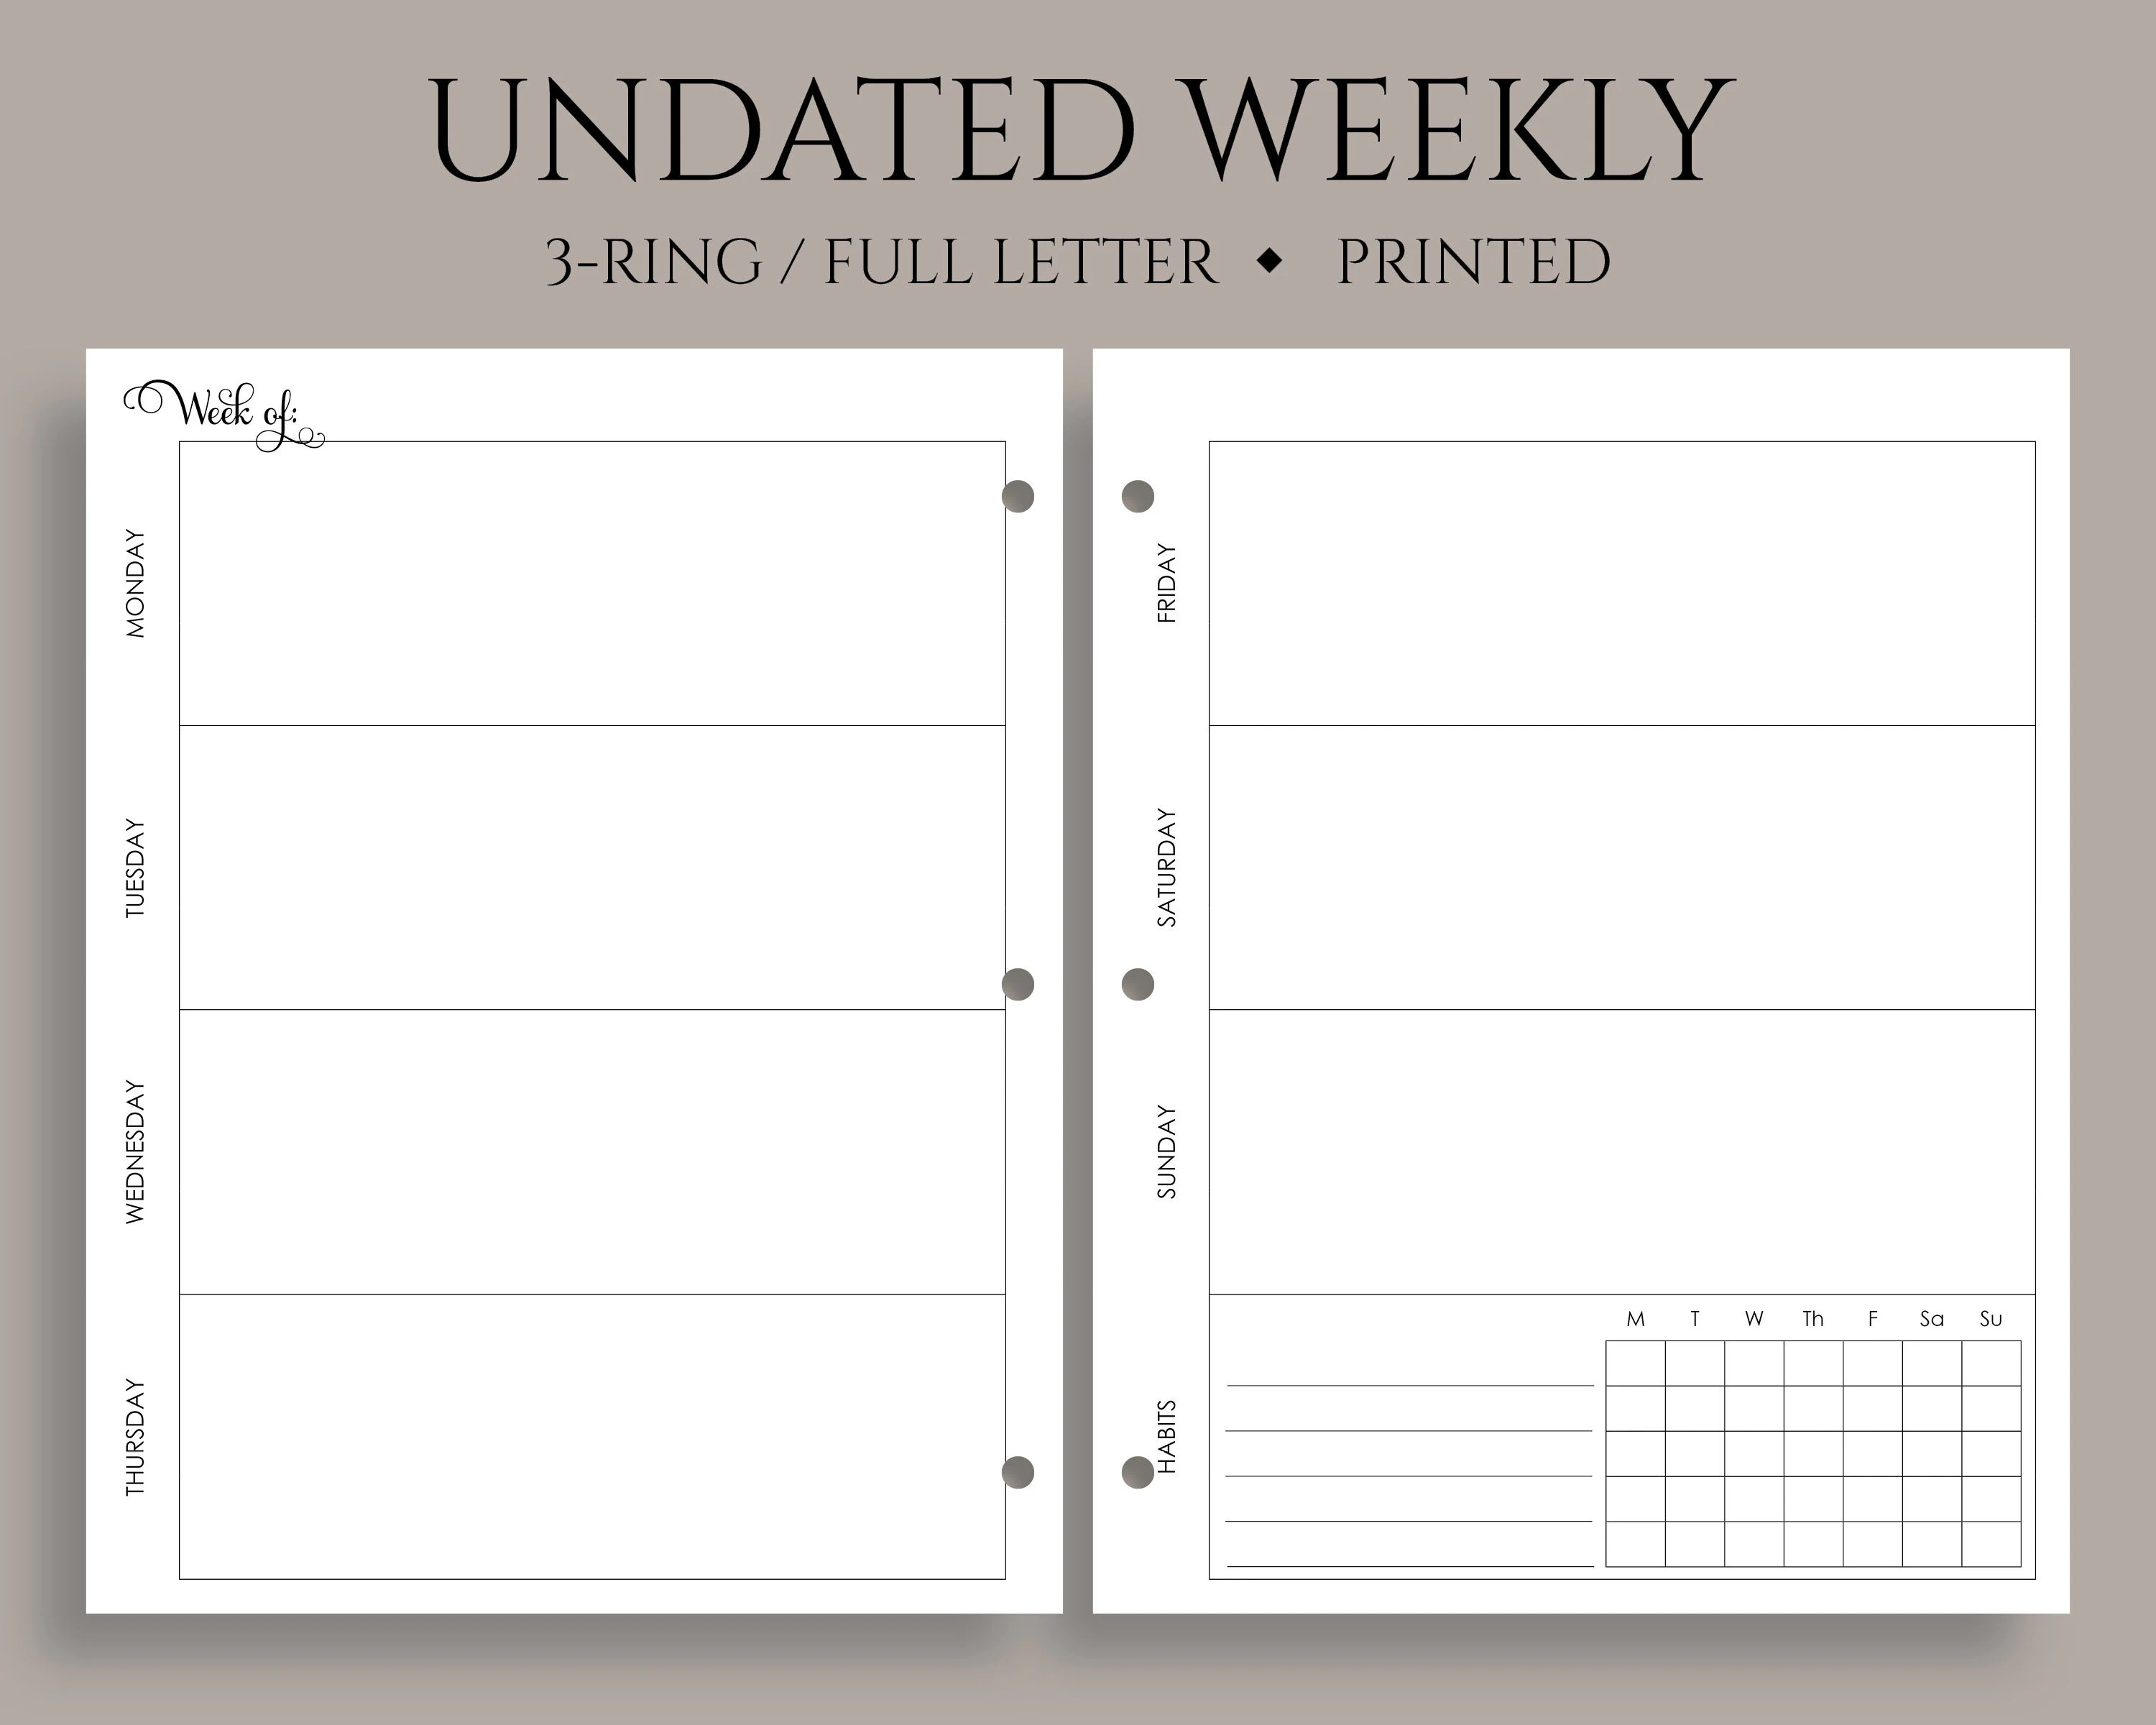 Undated Weekly Planner Inserts Horizontal Layout with Weekly Etsy